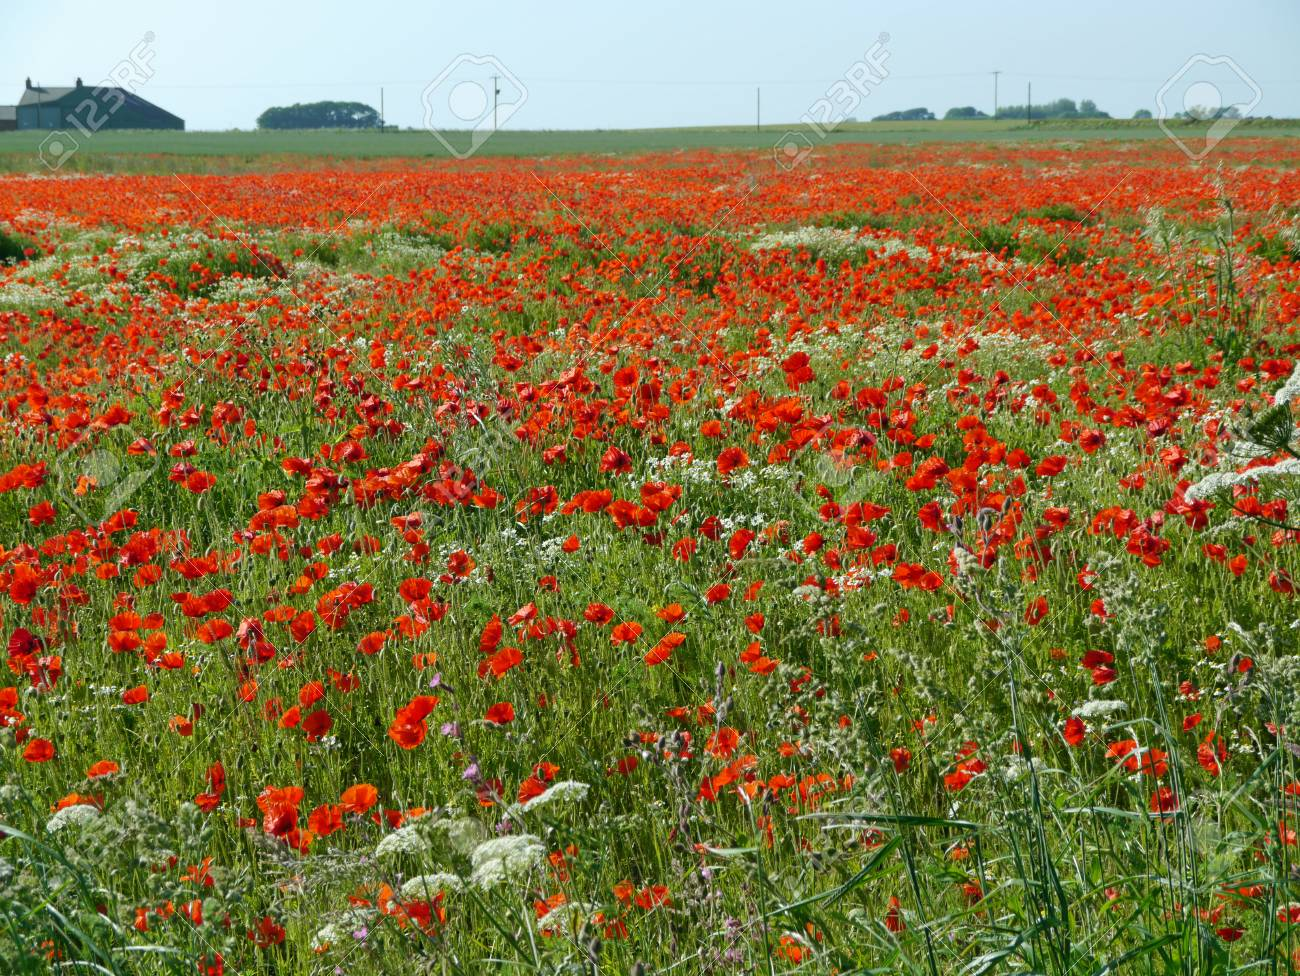 A meadow full of poppies and grasses in rural English countryside Standard-Bild - 81835535